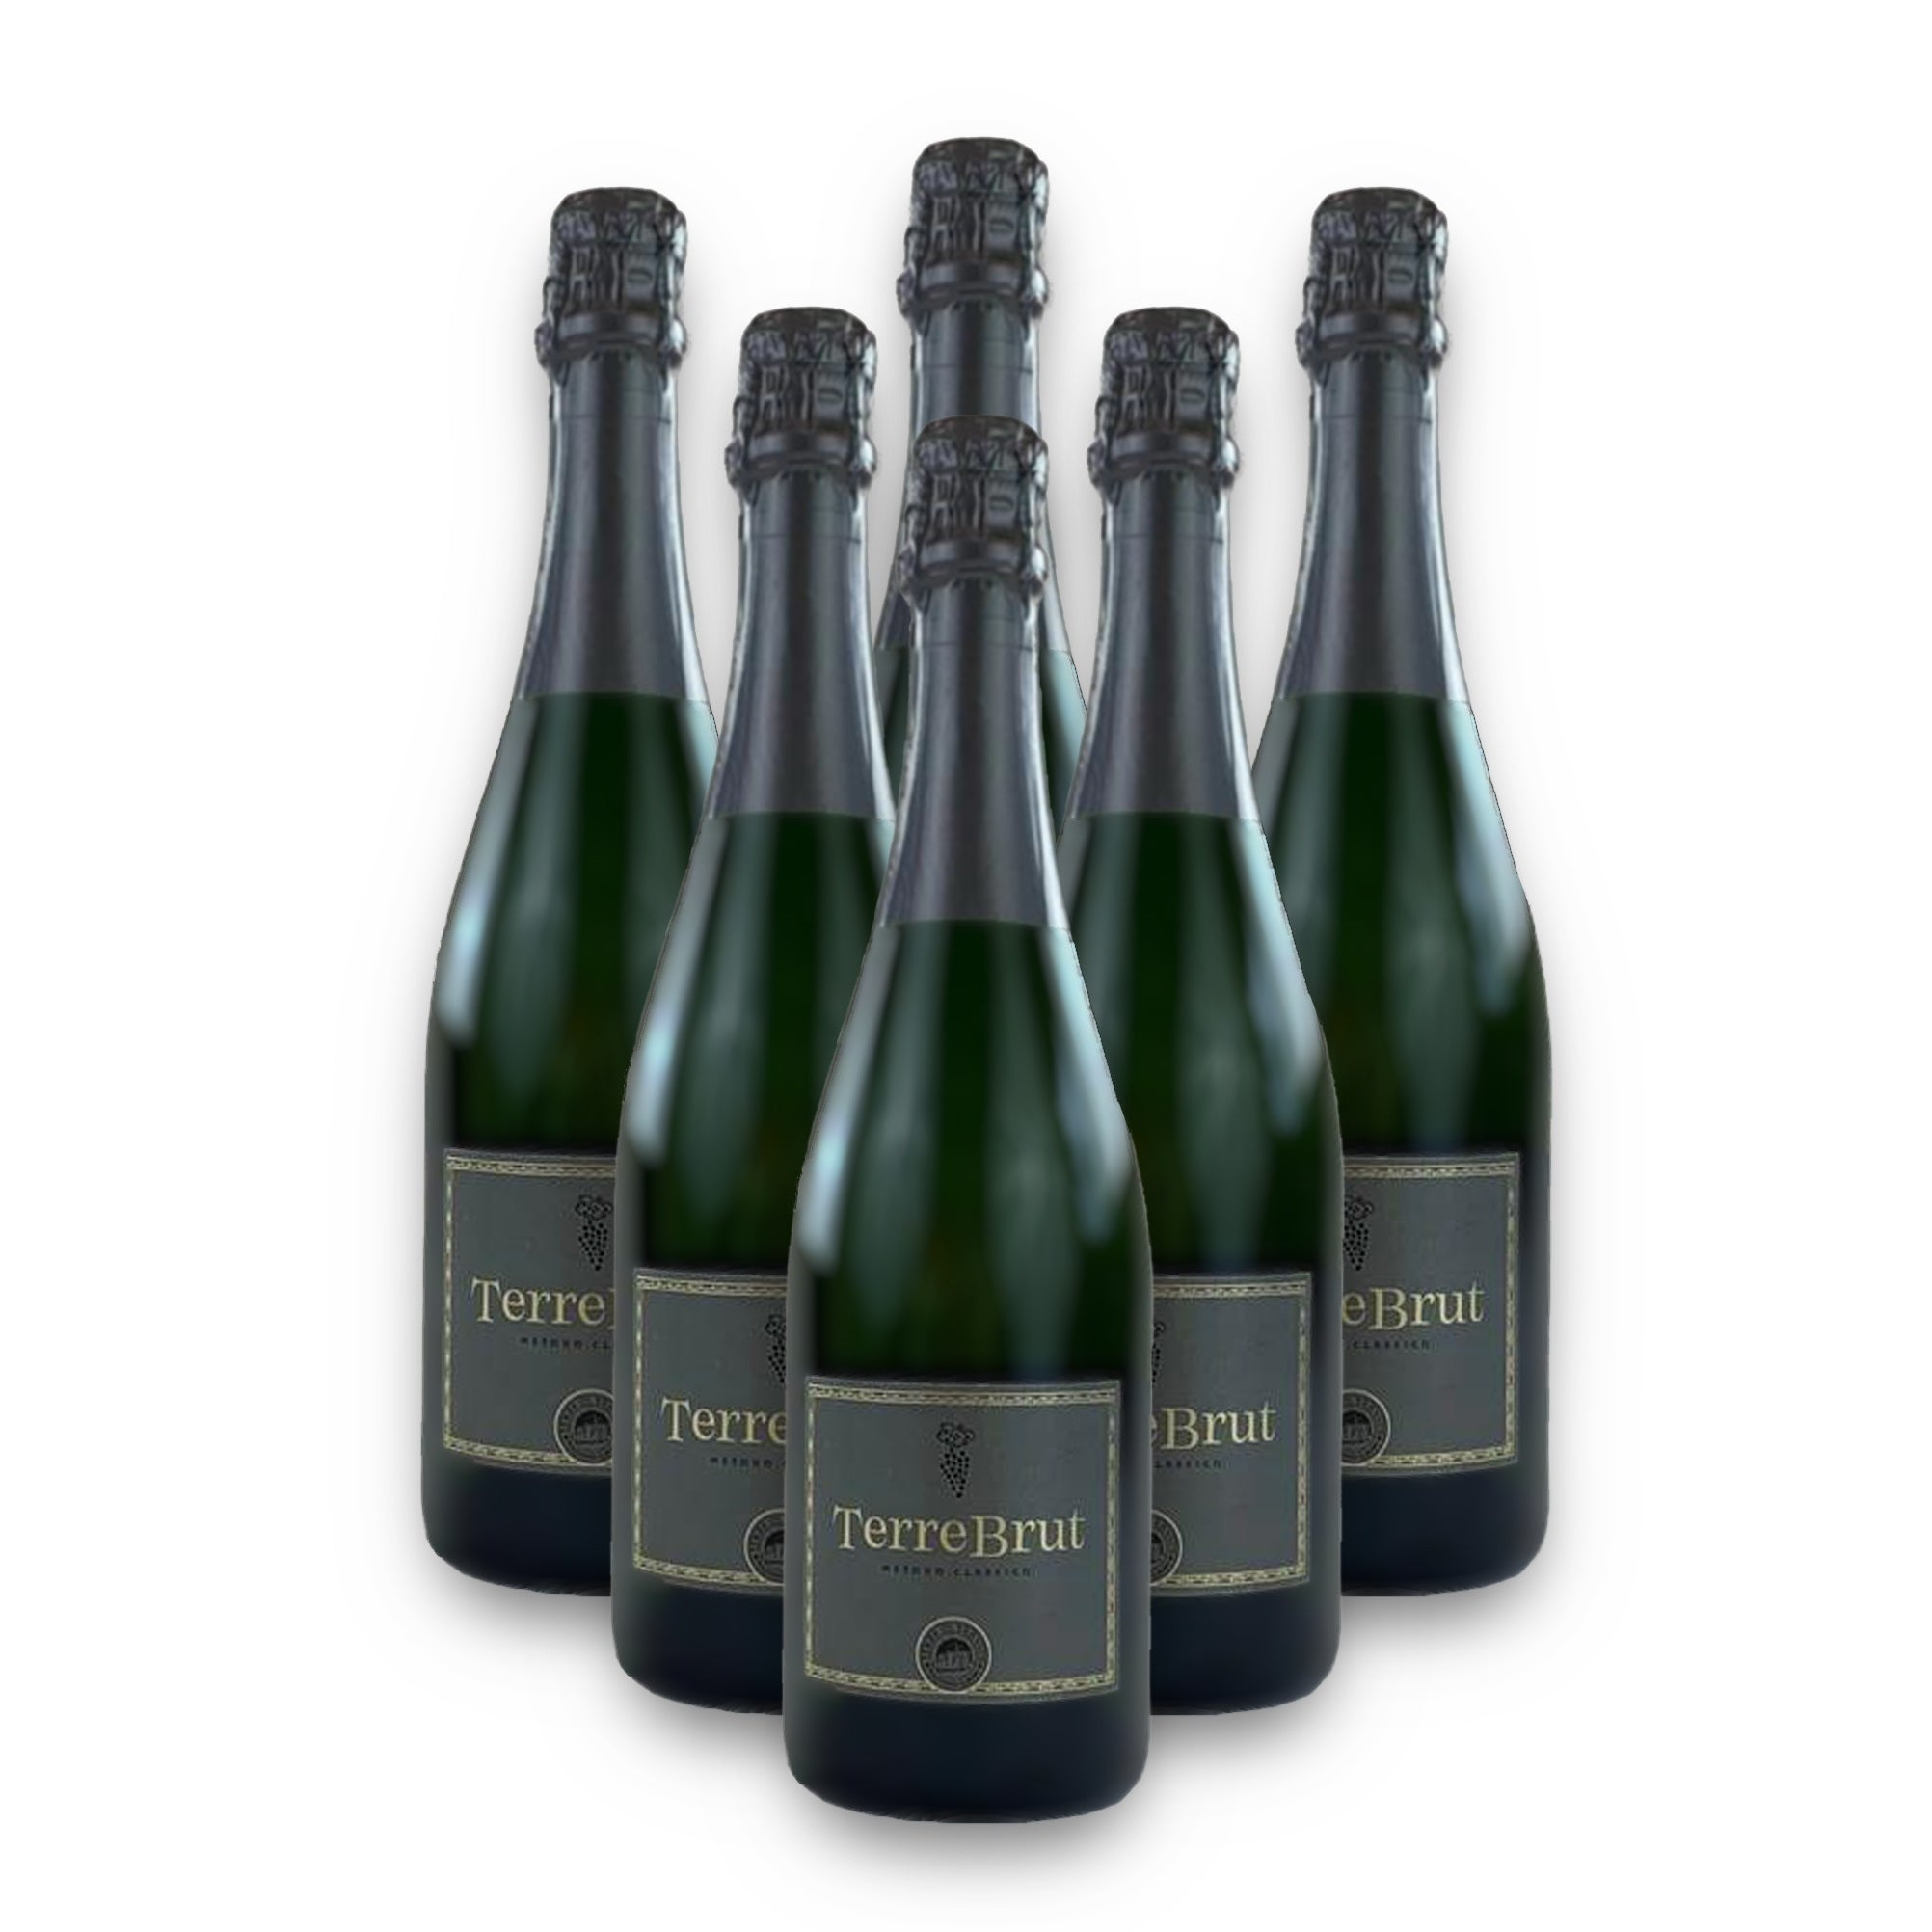 Case of 6 bottles of Terre Brut Sparkling Wine